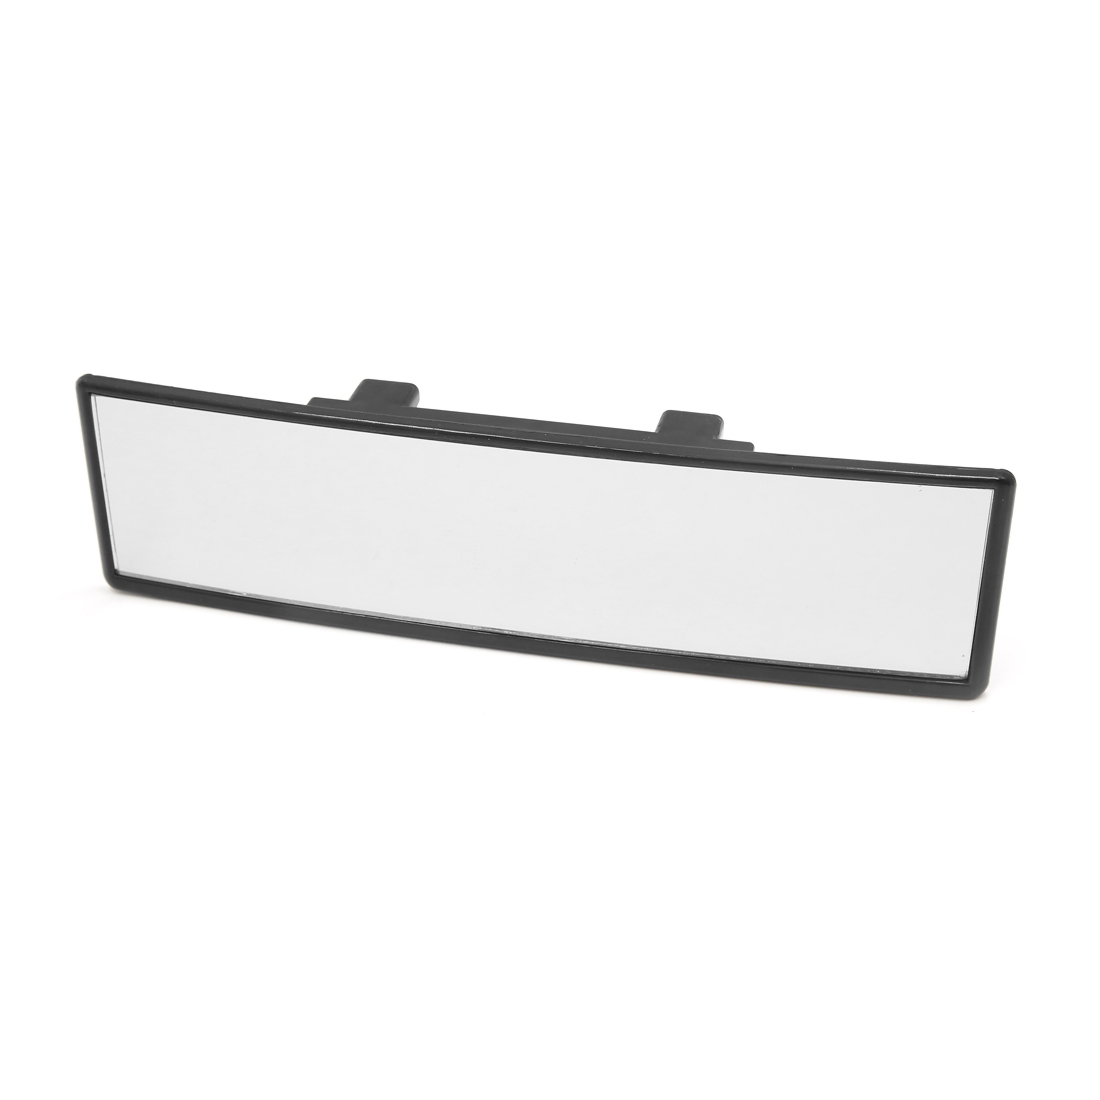 Black Car Truck Interior Wide Flat Clip On Rearview Rear View Mirror 235mm Width